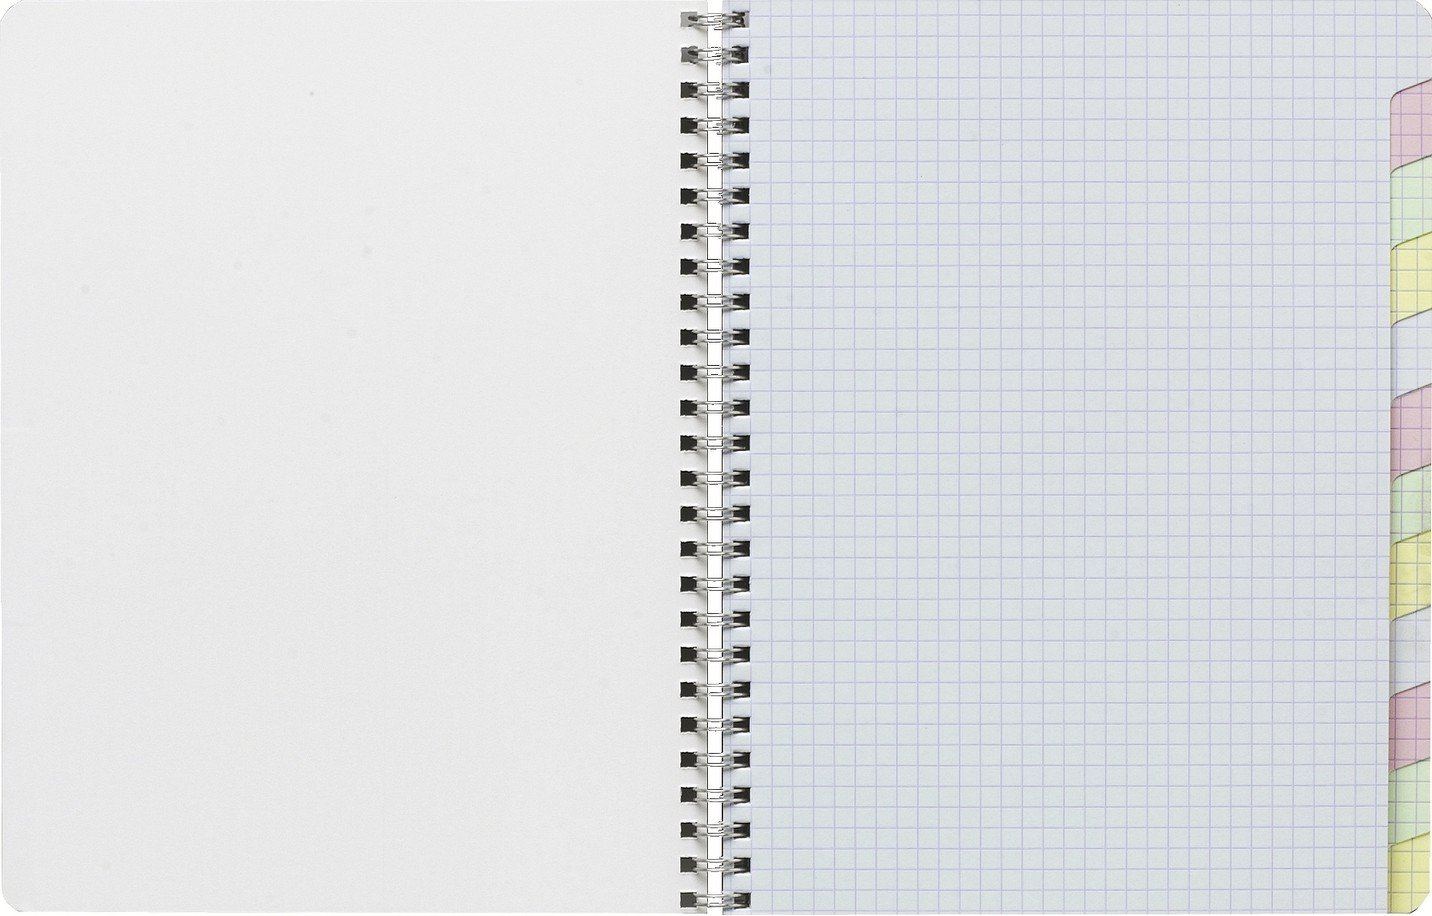 Clairefontaine Wirebound Multiple Subject Graph Paper Notebook 60 sheets with 12 tabs 6 3/4 in. x 8 5/8 in - Assorted colors 8959C LIB3329680895902